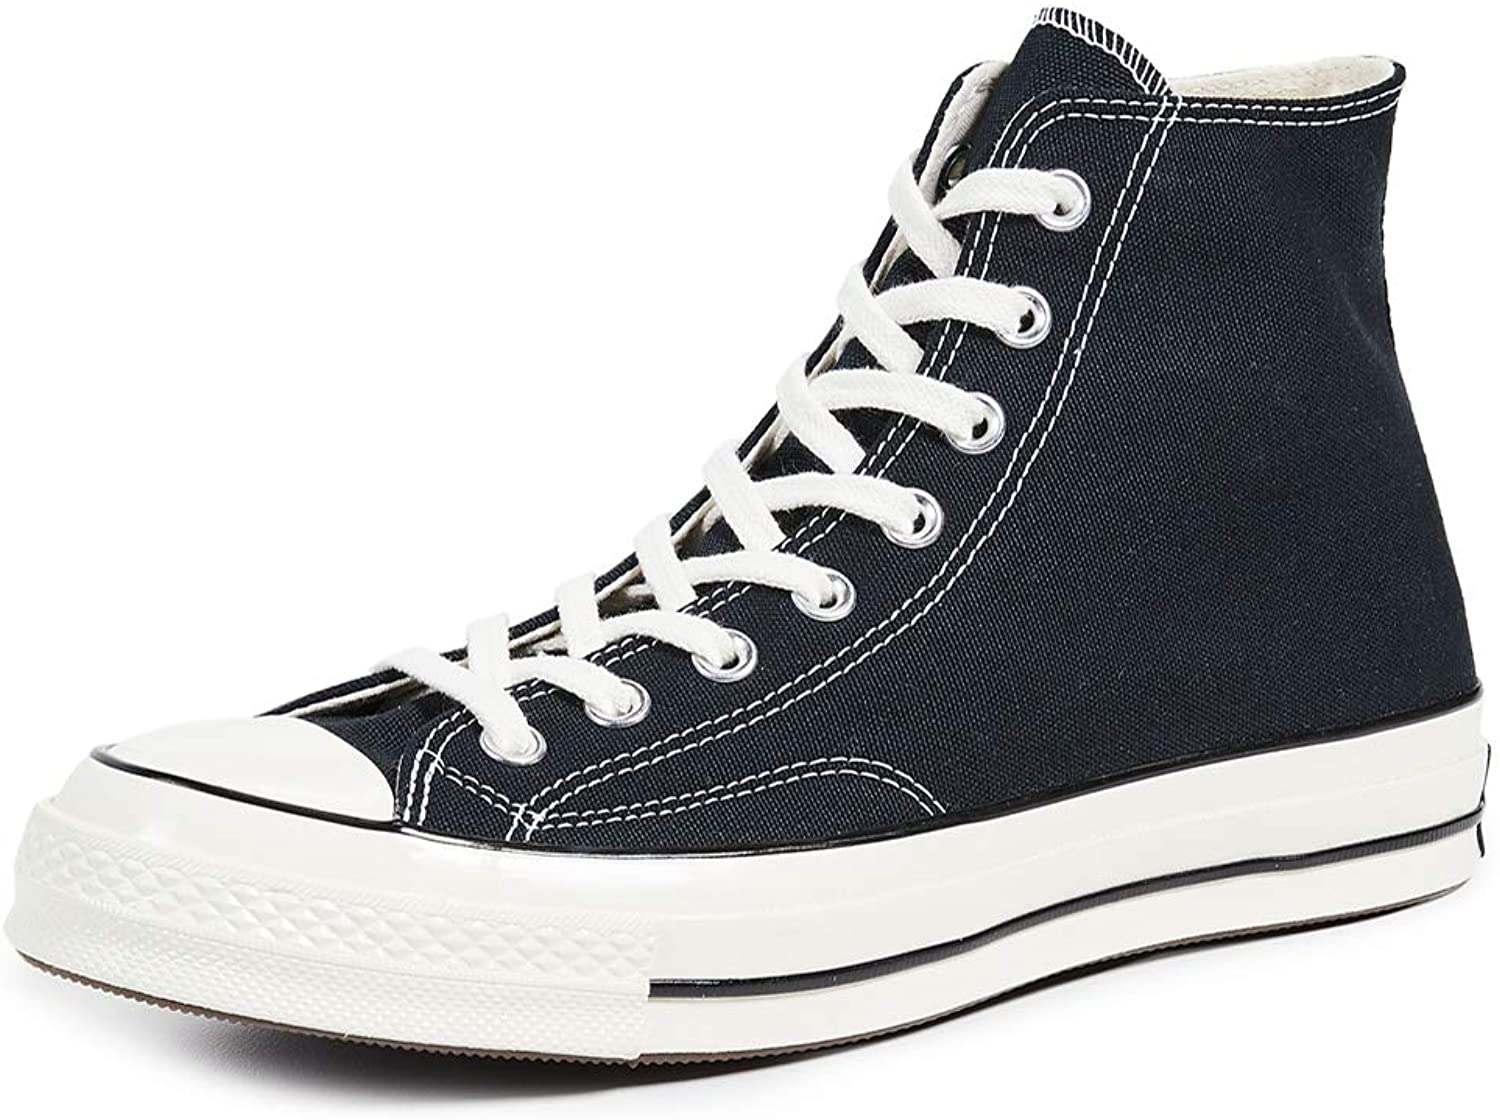 Star '70s High Top Sneakers